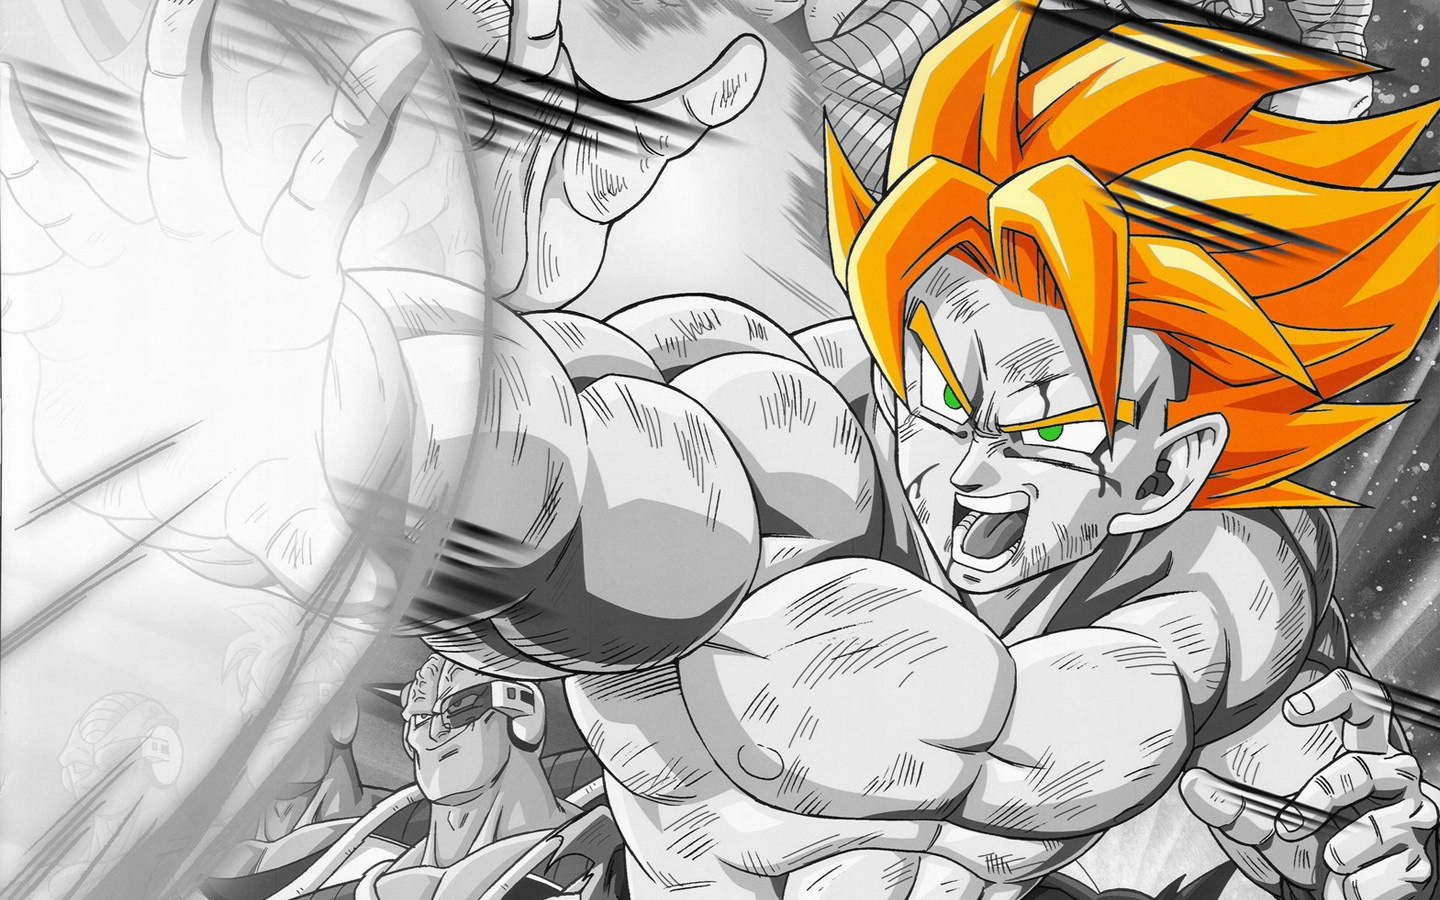 http://1.bp.blogspot.com/-ds9ctIXBiAI/UC2DwICbffI/AAAAAAAAEHc/B4zIVmL0oBk/s1600/6843_dragon_ball_z_hd_wallpapers.jpg